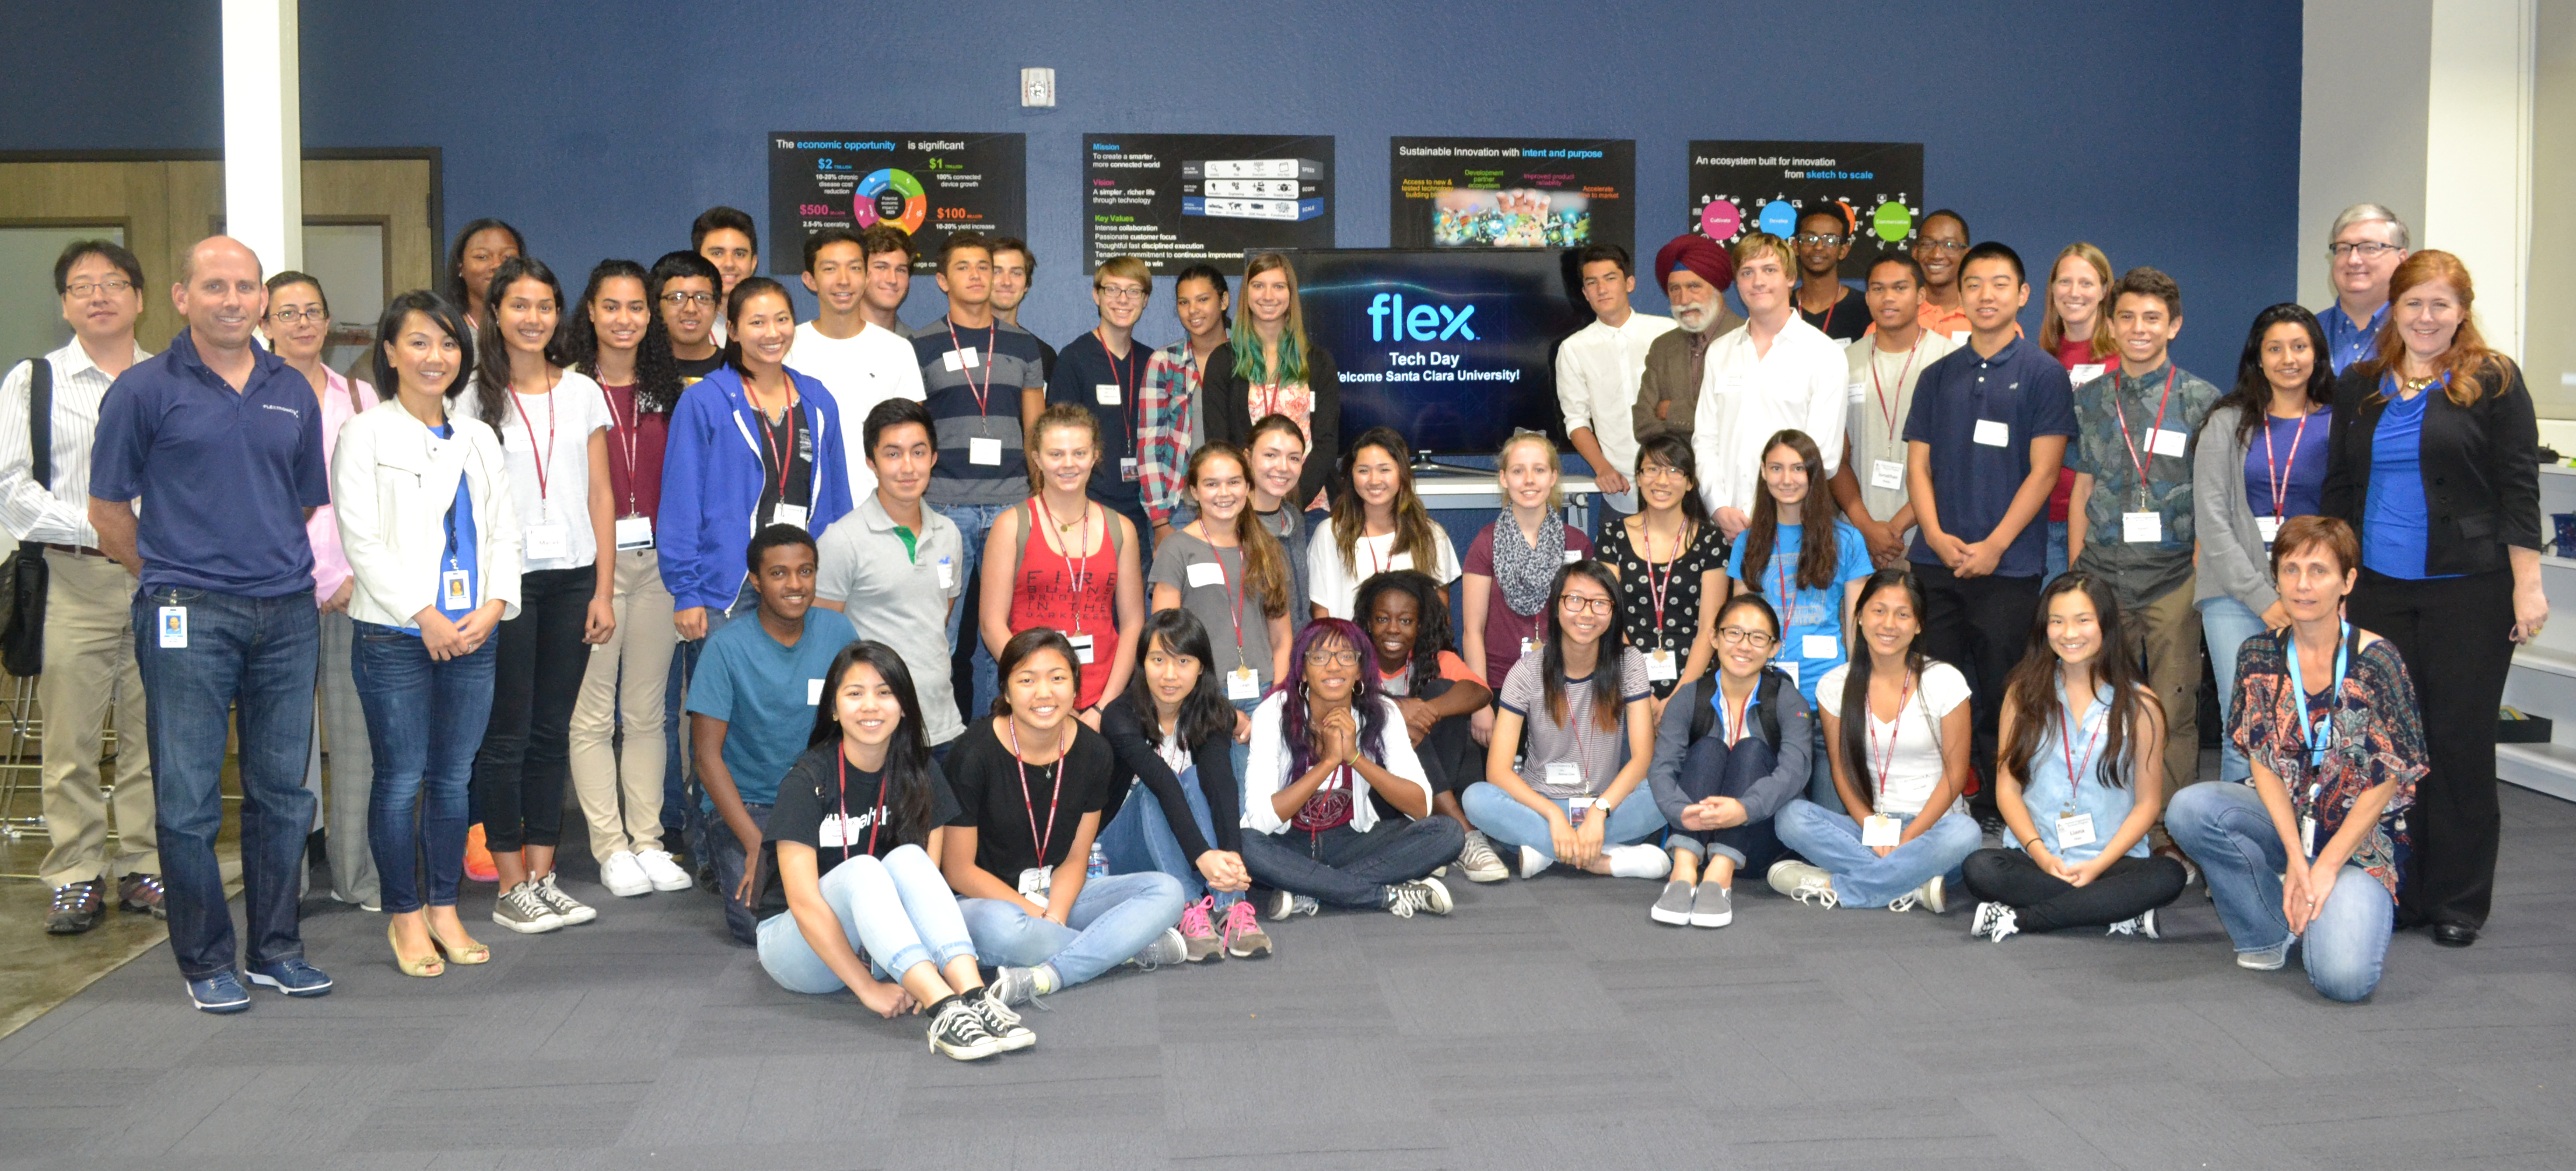 High school students taking part in the School of Engineering's Summer Engineering Seminar visit the Flex Innovation Center